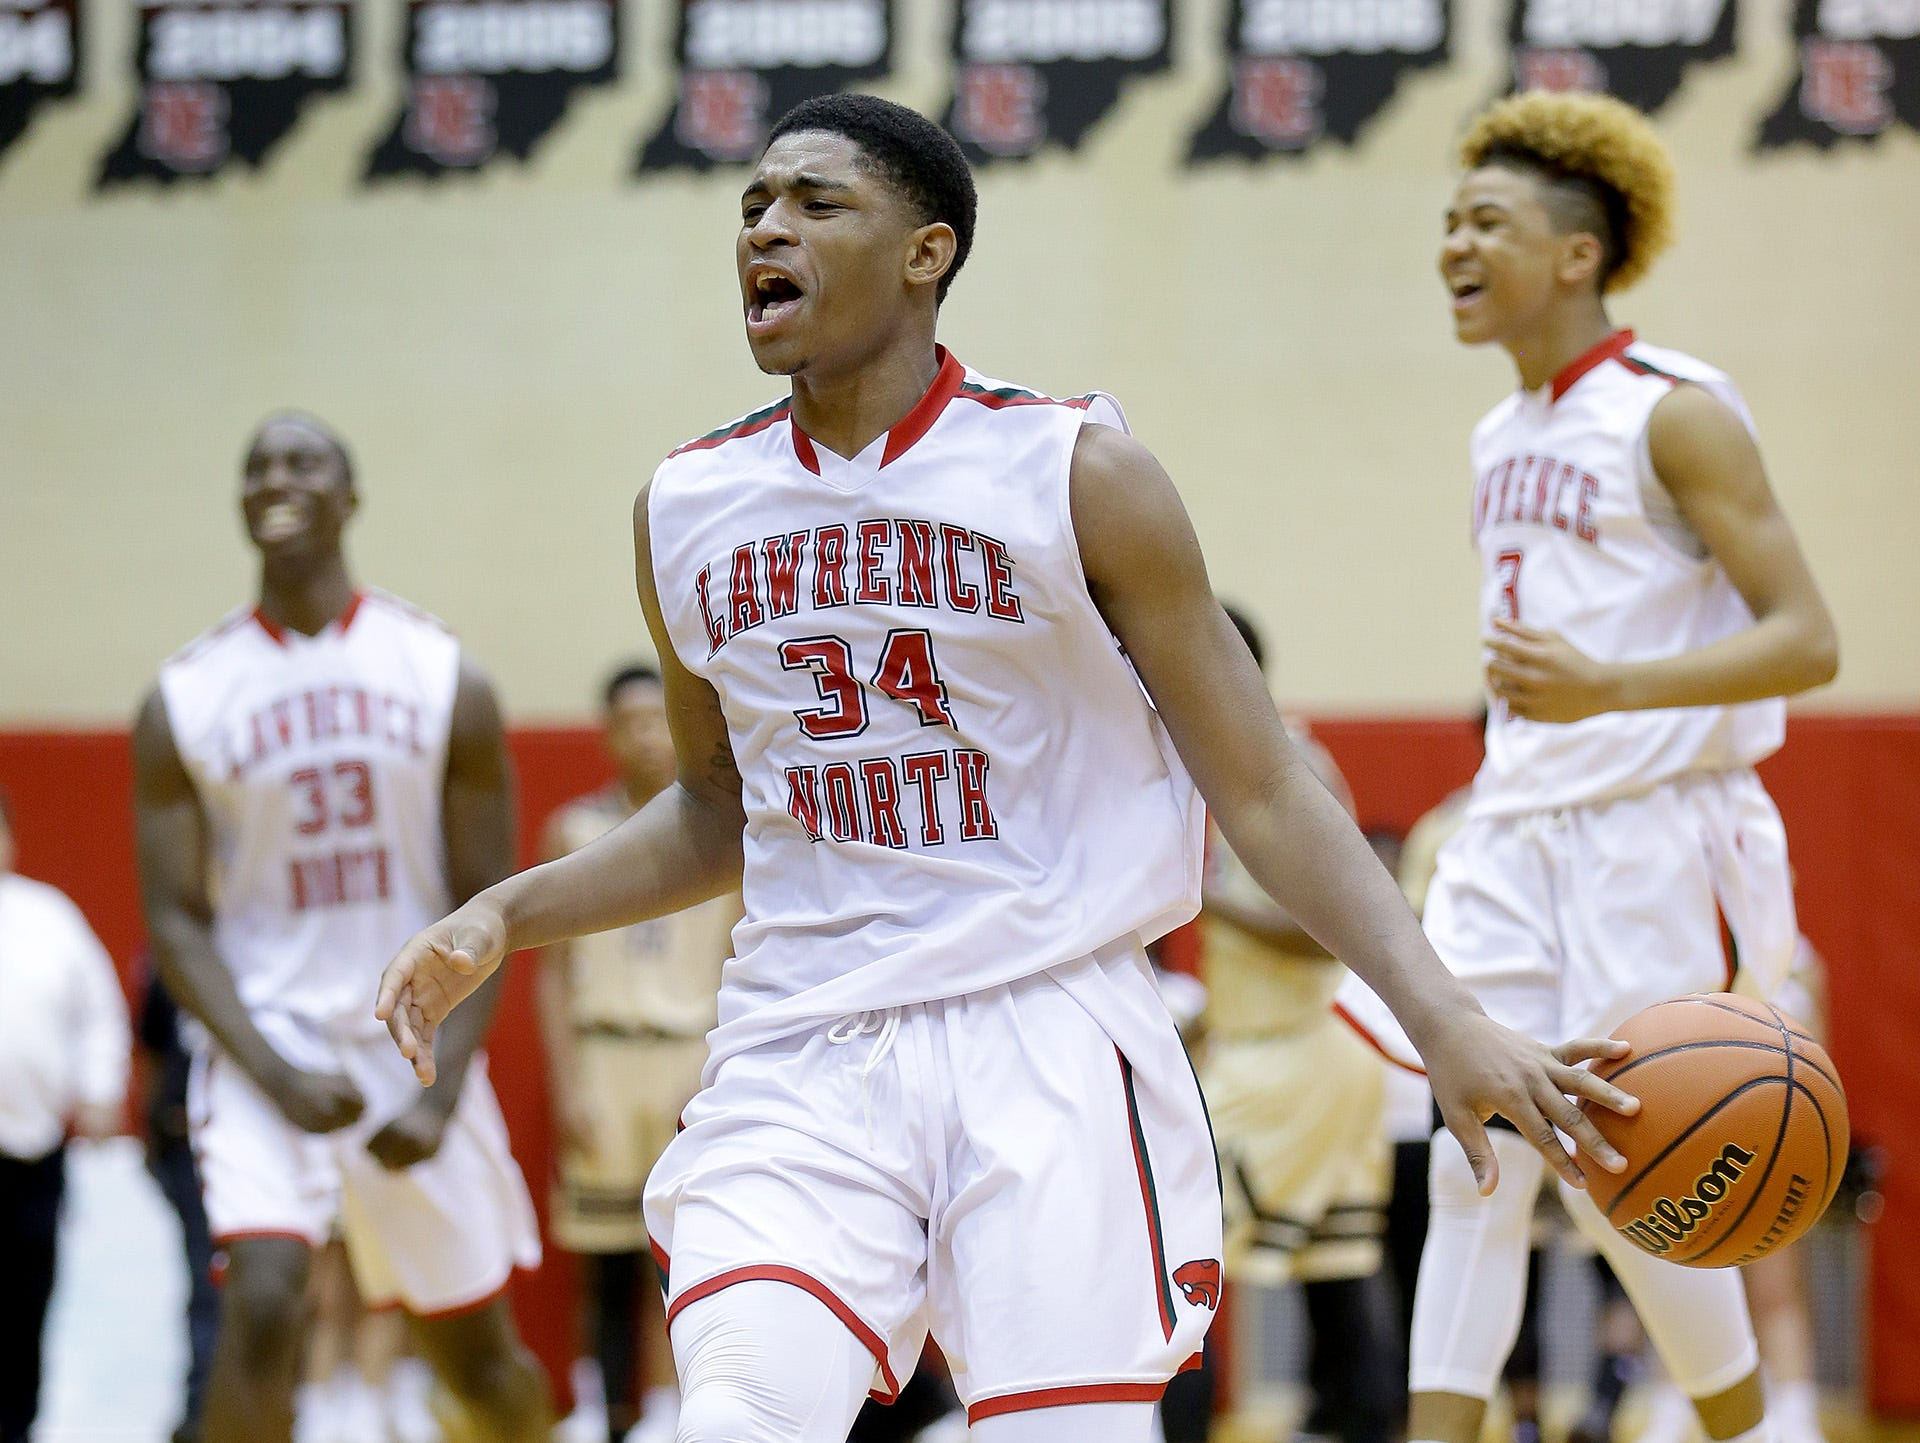 Lawrence North's Kevin Easley (34) begins to celebrate as time runs off the clock at the end of their win Tuesday over Warren Central.